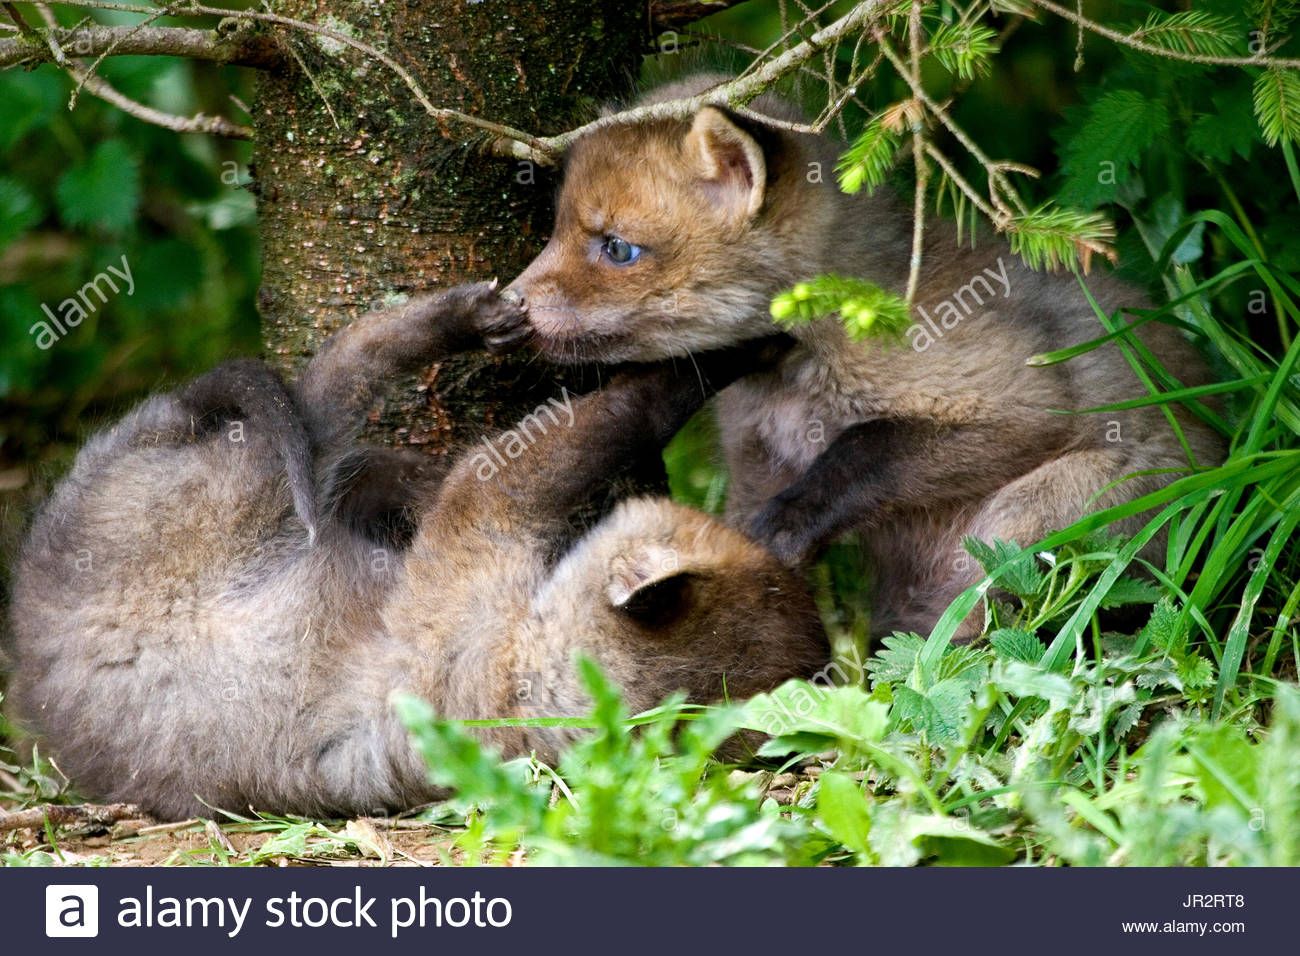 Red fox (Vulpes vulpes) young at the exit of the burrow in a spruce forest, Ardenne, Belgium - Stock Image